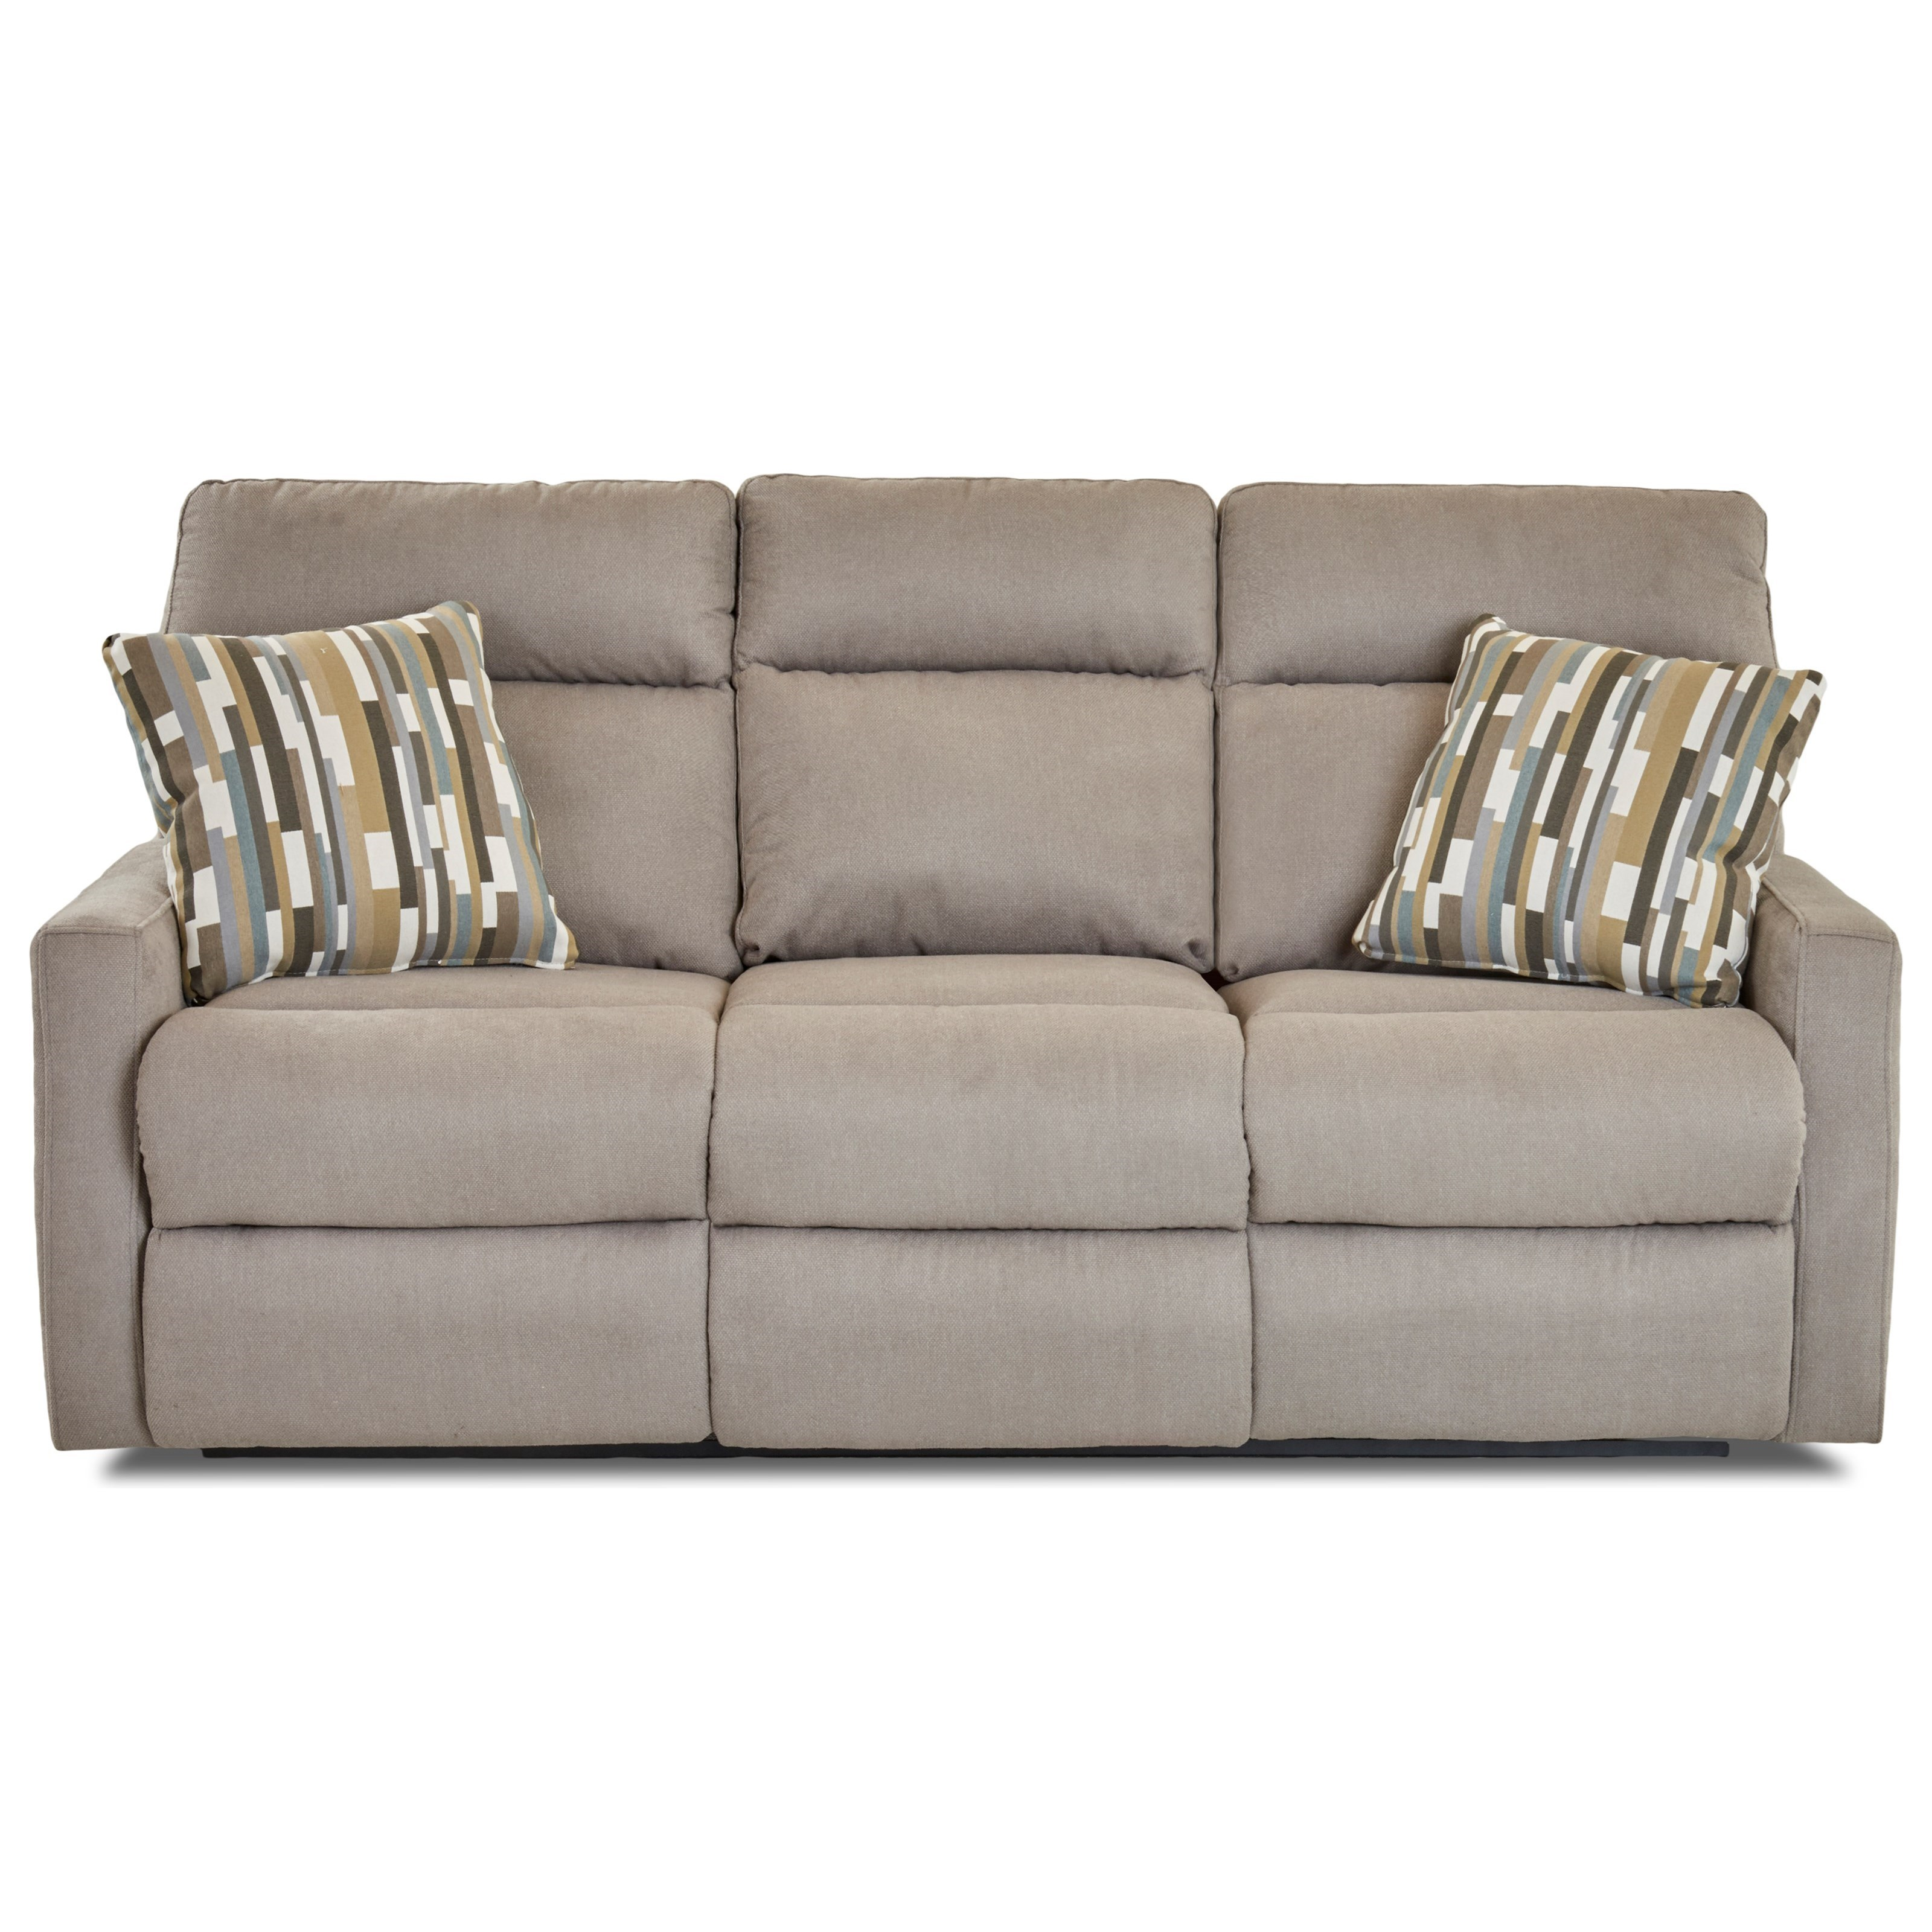 Daphne Power Reclining Sofa w/ Pillows by Klaussner at H.L. Stephens